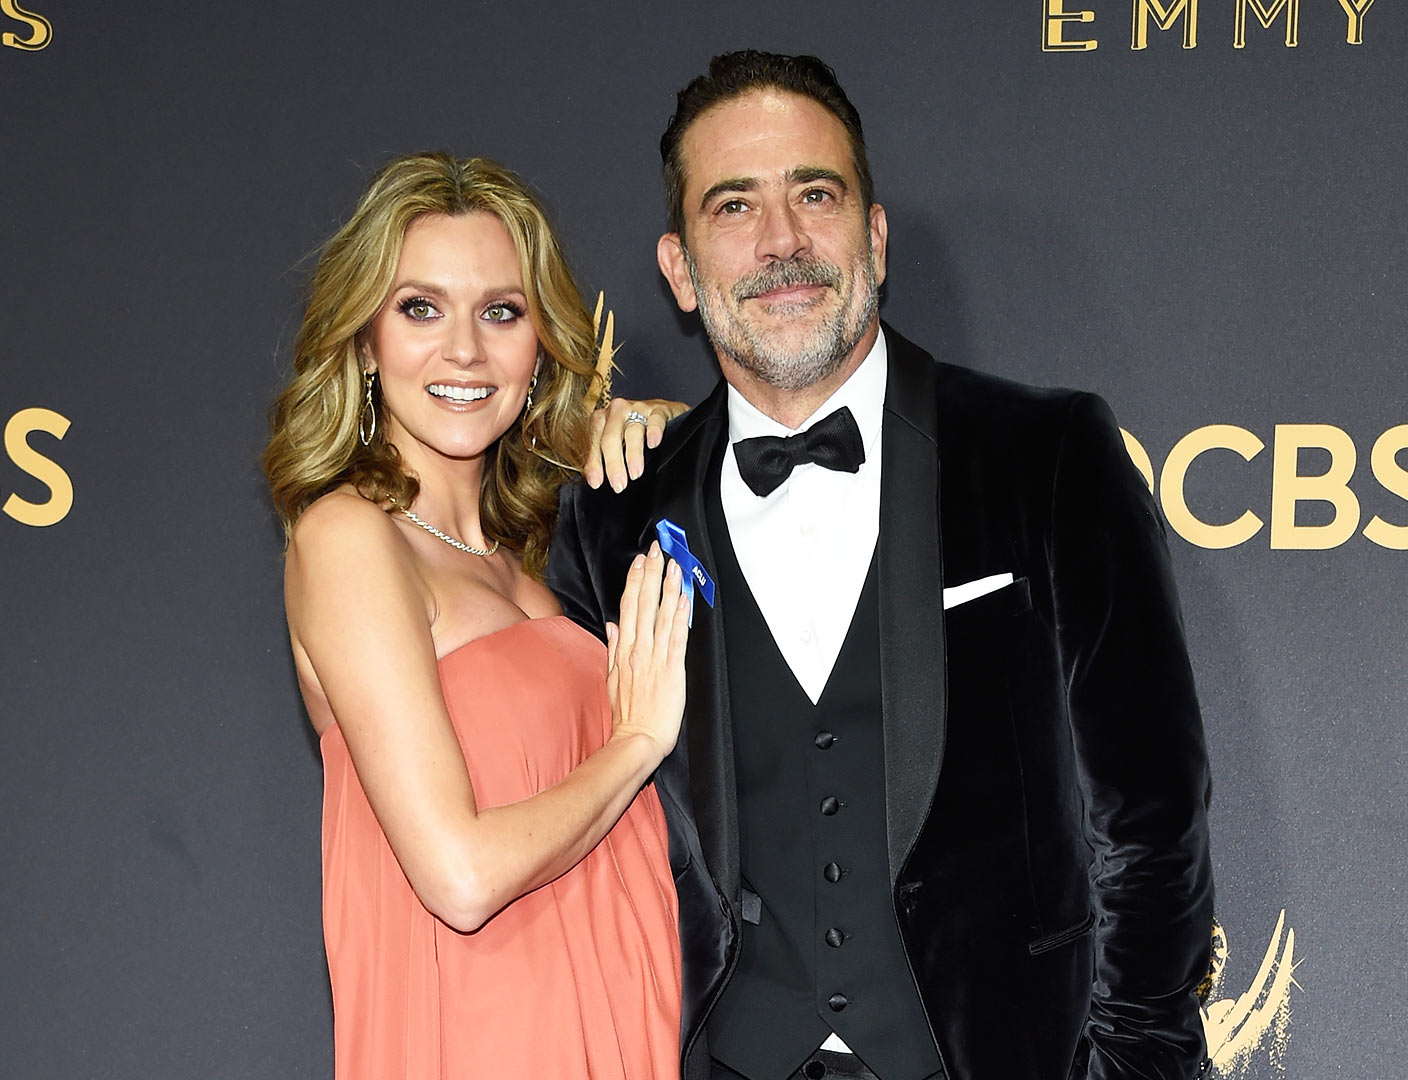 Hilarie Burton And Jeffrey Dean Morgan Welcome Their Baby Girl